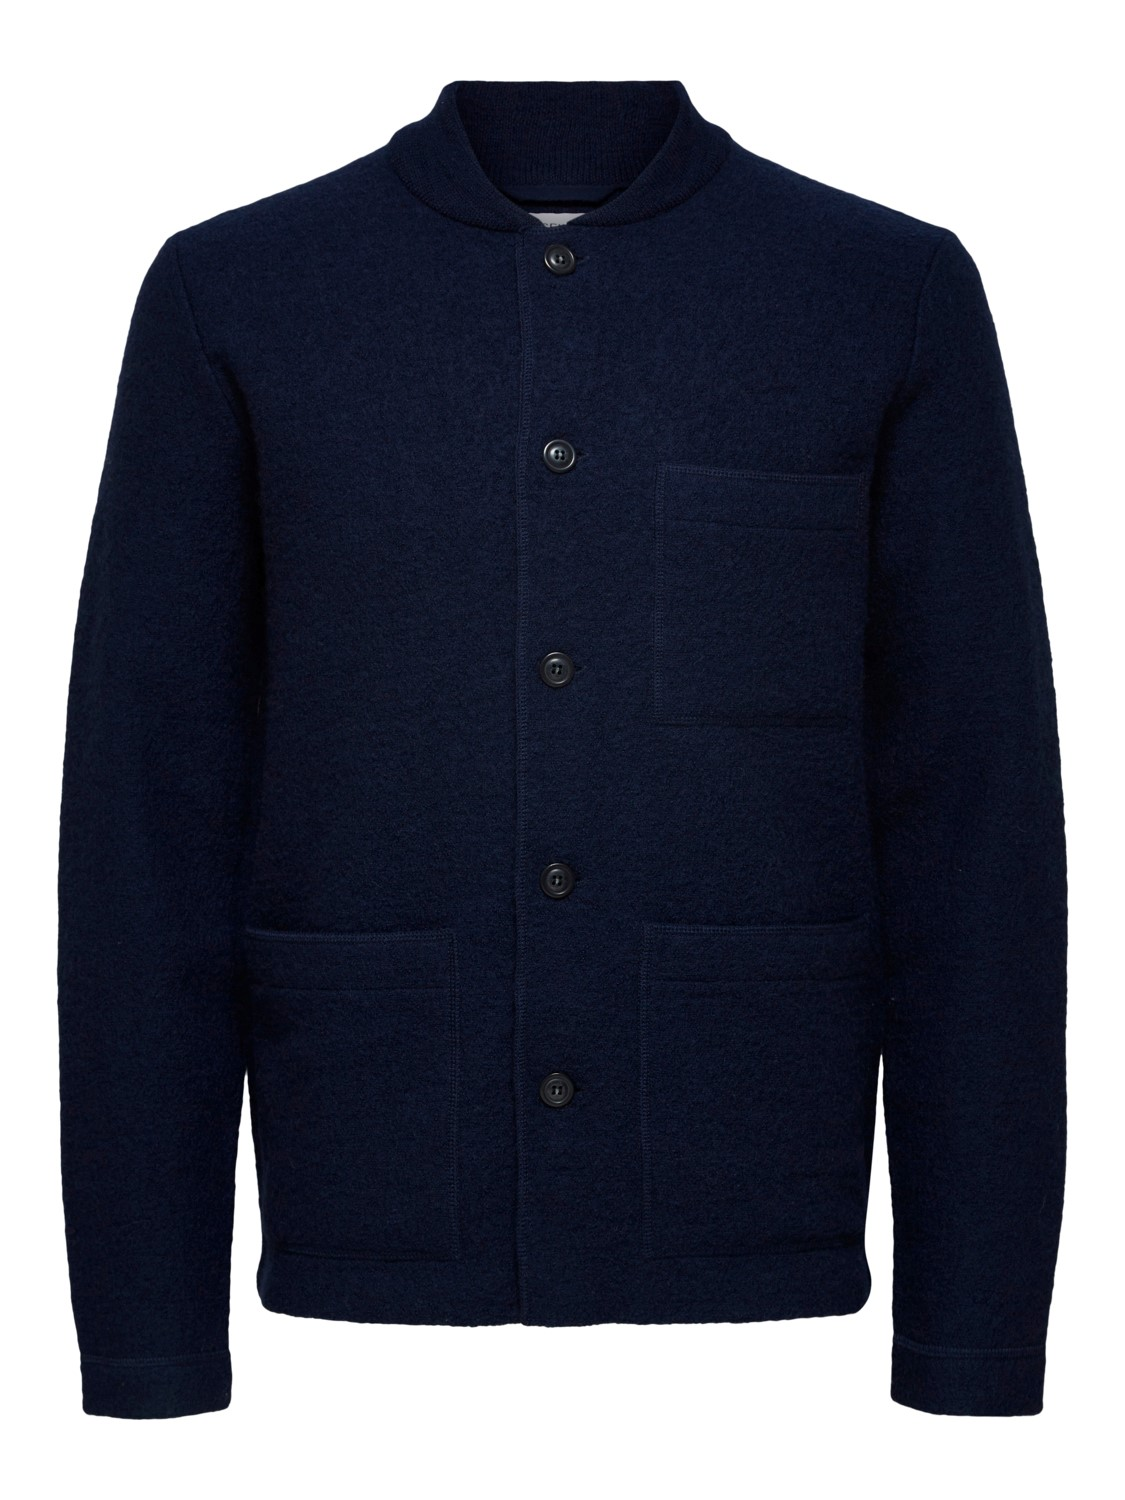 SELECTED - SLHROAN WORKWEAR KNIT CARDIGAN NAVY | Gate36 Hobro